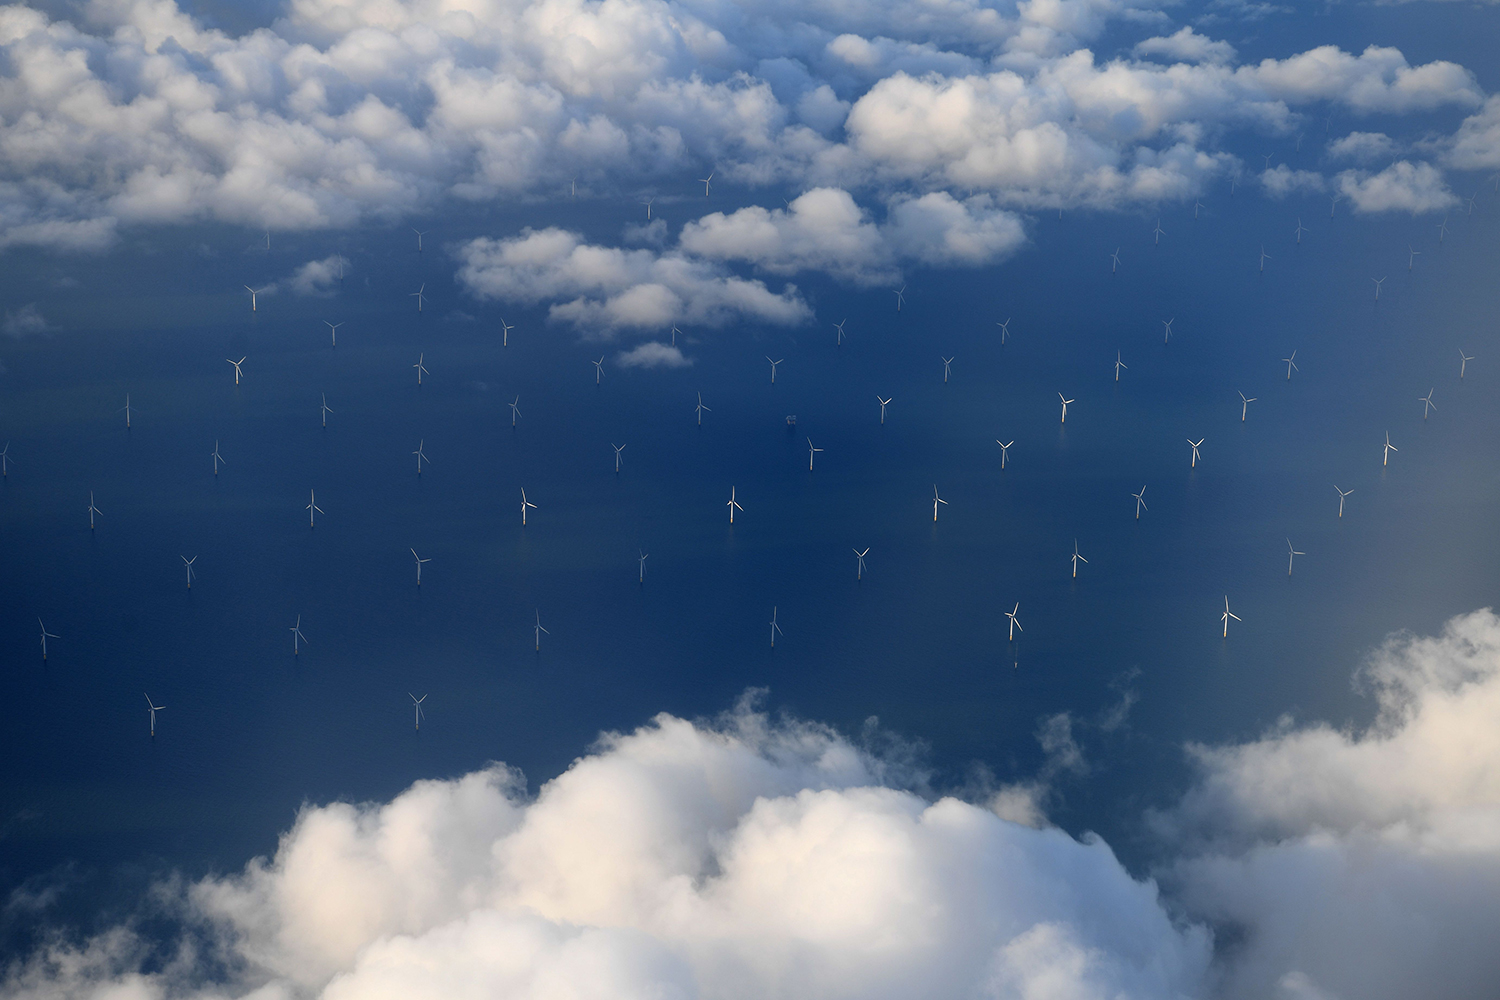 Burbo Bank Offshore Wind Farm on the Burbo Flats in Liverpool Bay, operated by DONG Energy, is pictured from the the window of an aircraft flying over the Irish Sea, off the west coast of northern England, on November 8, 2017.       (Paul Ellis/AFP/Getty Images)